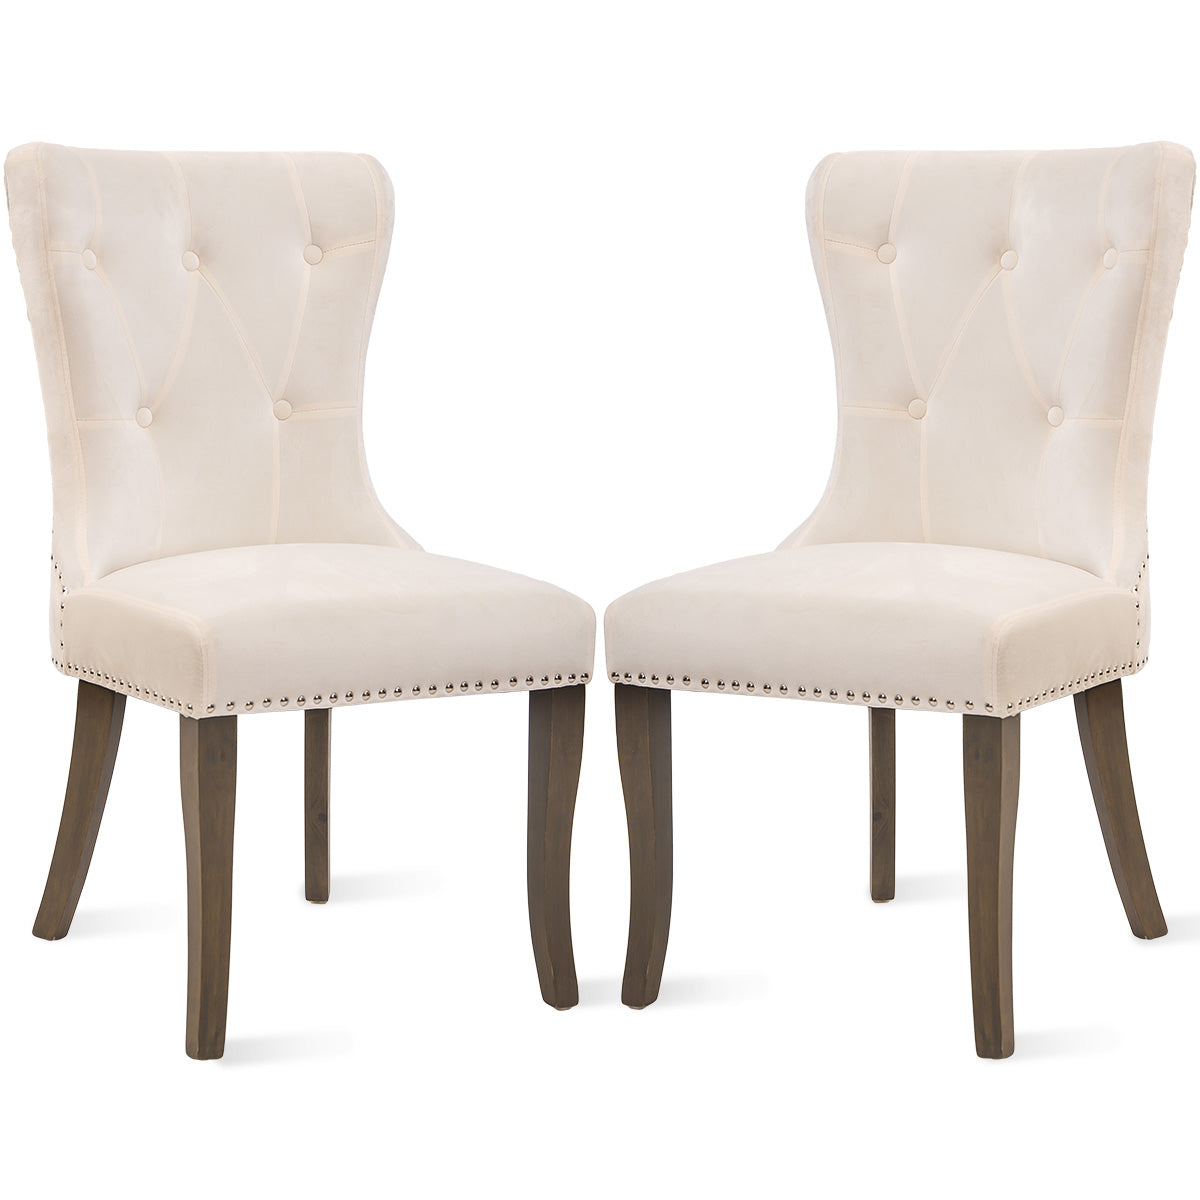 CAMANDE Dining Chair Tufted Armless Chair Upholstered Accent Chair, Set of 2 (Beige)